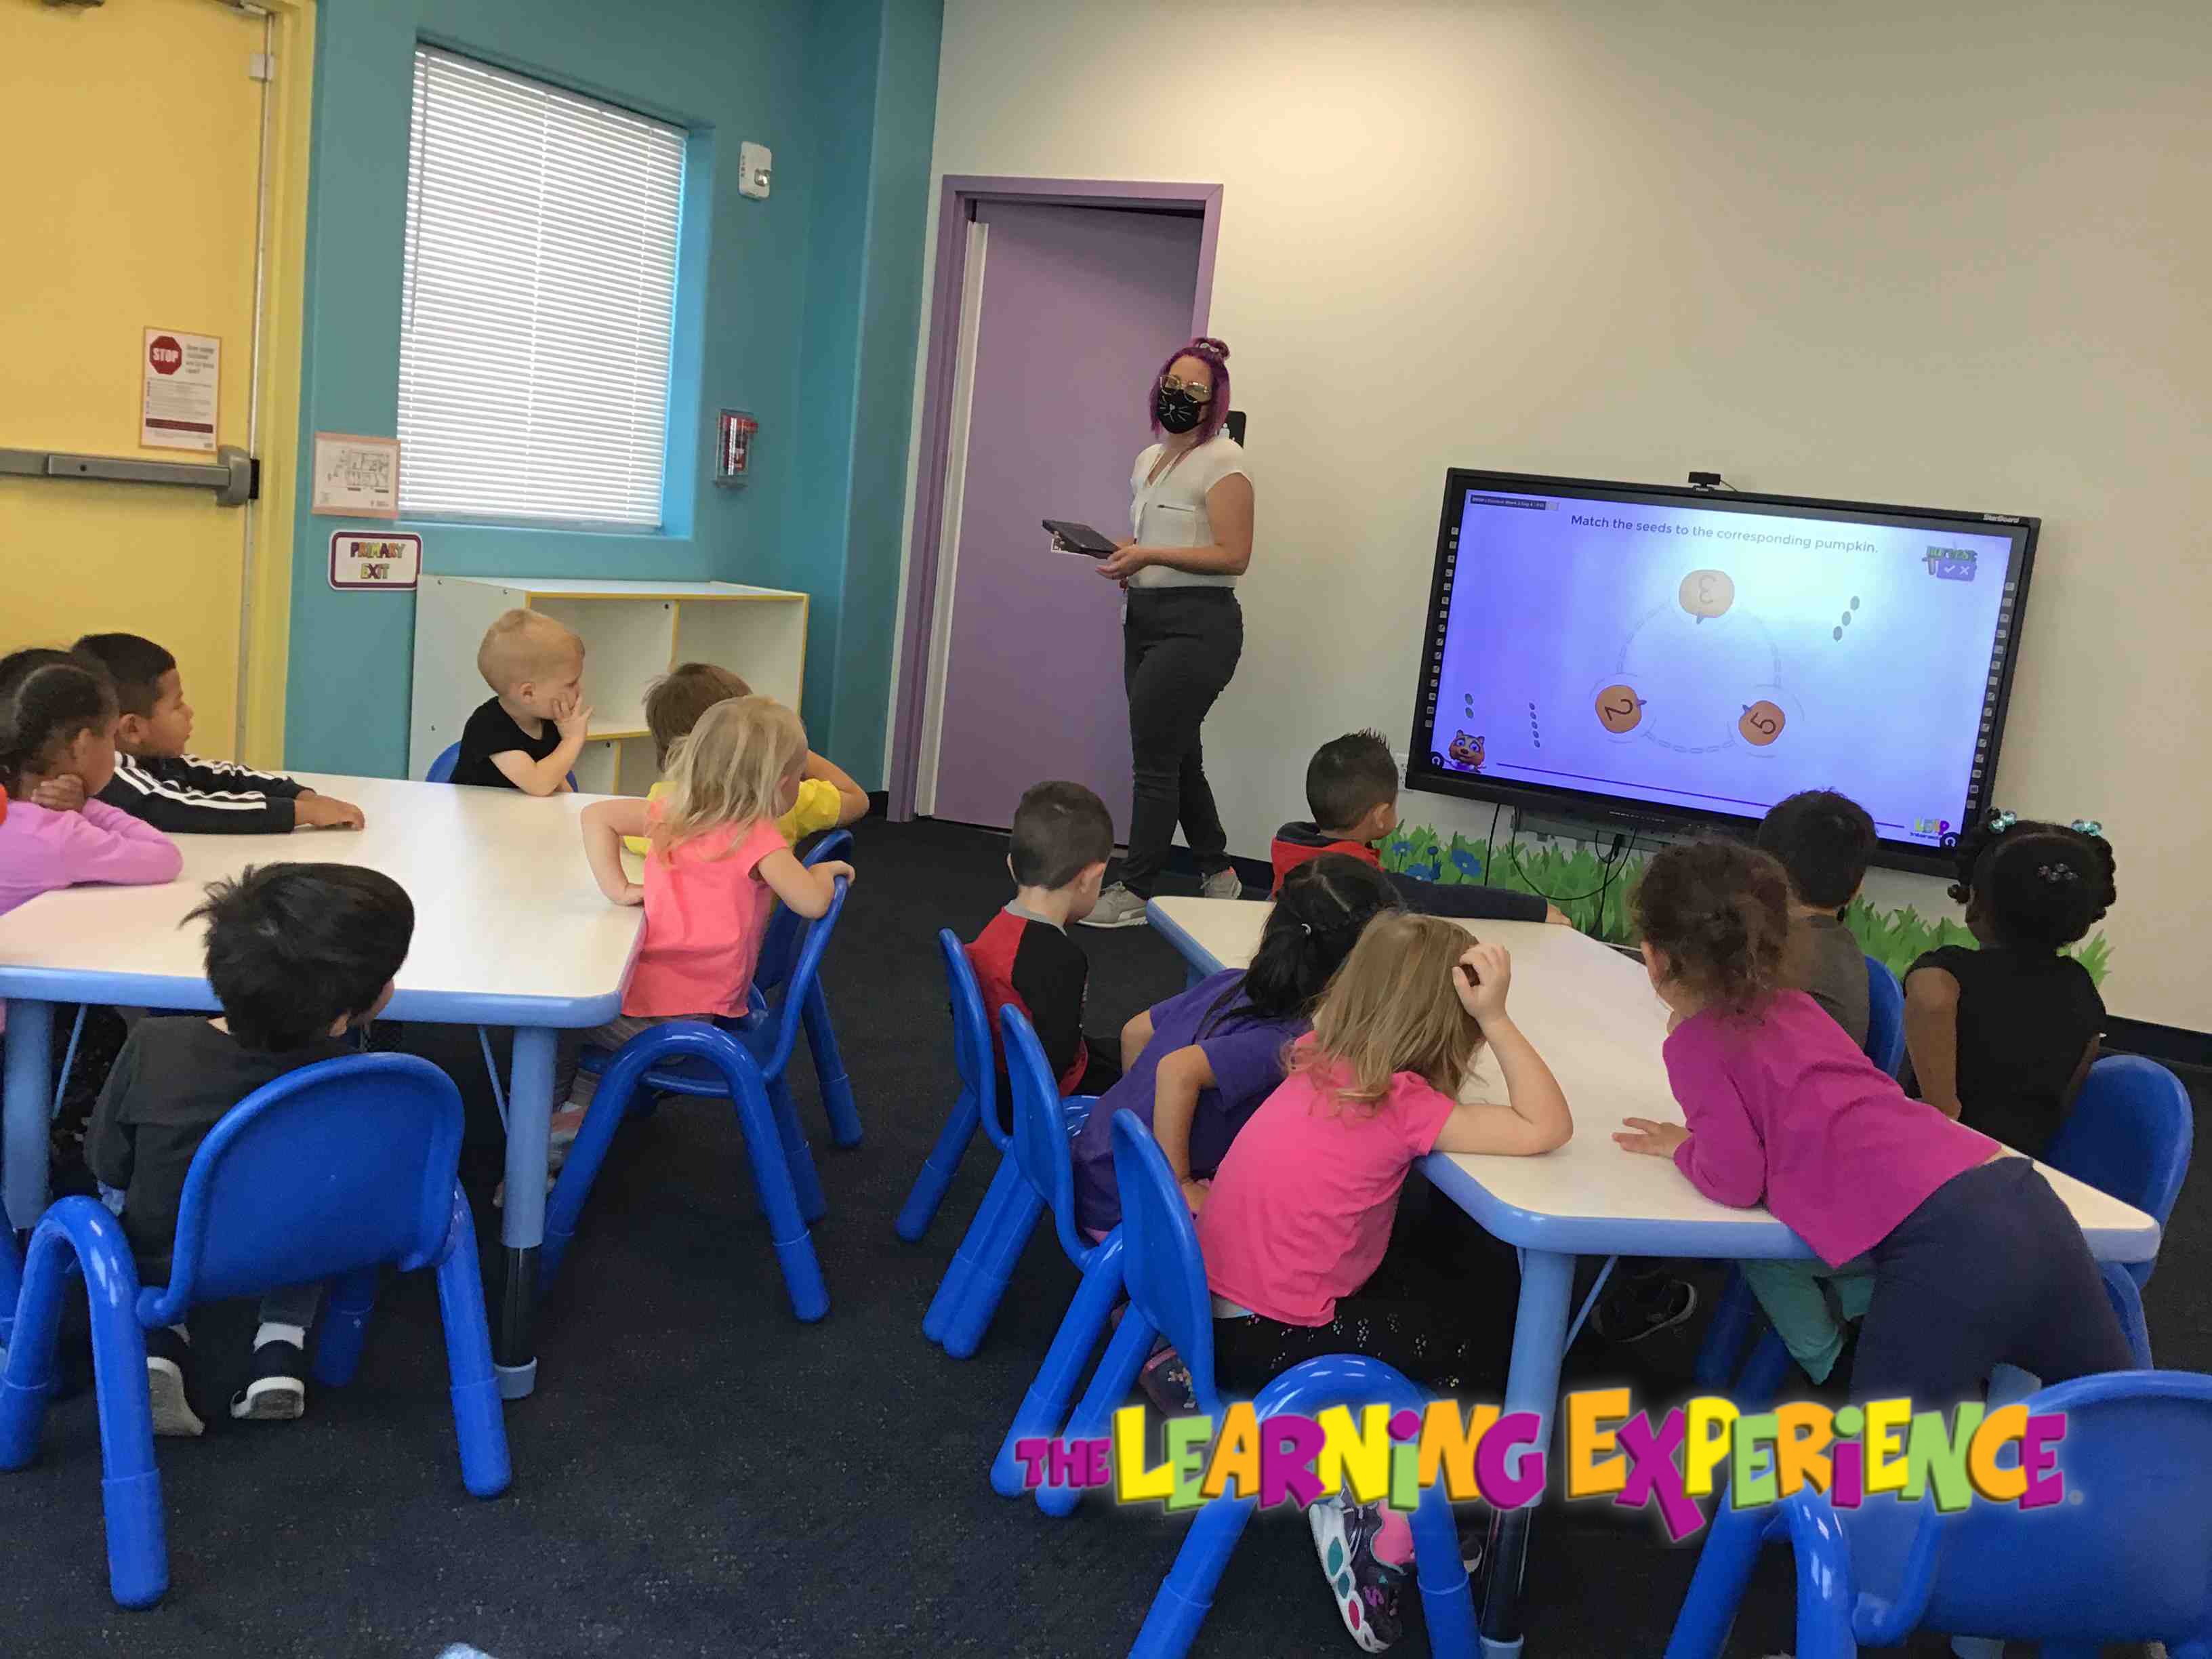 Early learners can use technology to explore new worlds, make believe, and actively engage in fun and challenging activities.